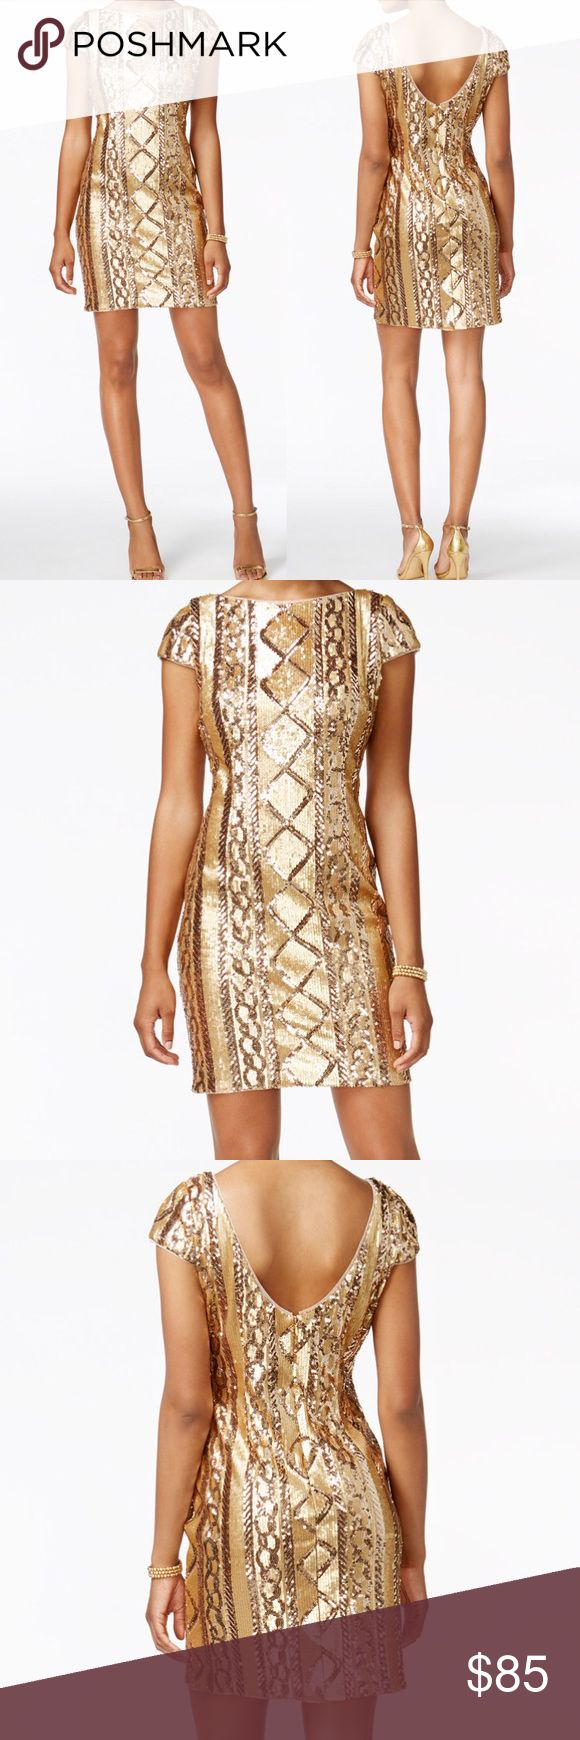 Adrianna Papell Gold Metallic Sequined Dress Sz 8 Adrianna Papell Gold Metallic Sequined Dress Sz 8  Size: 8 (medium)  New with tags- NWT  Short sleeve, above knee  Tags: cocktail party event; wedding sheath dress Adrianna Papell Dresses